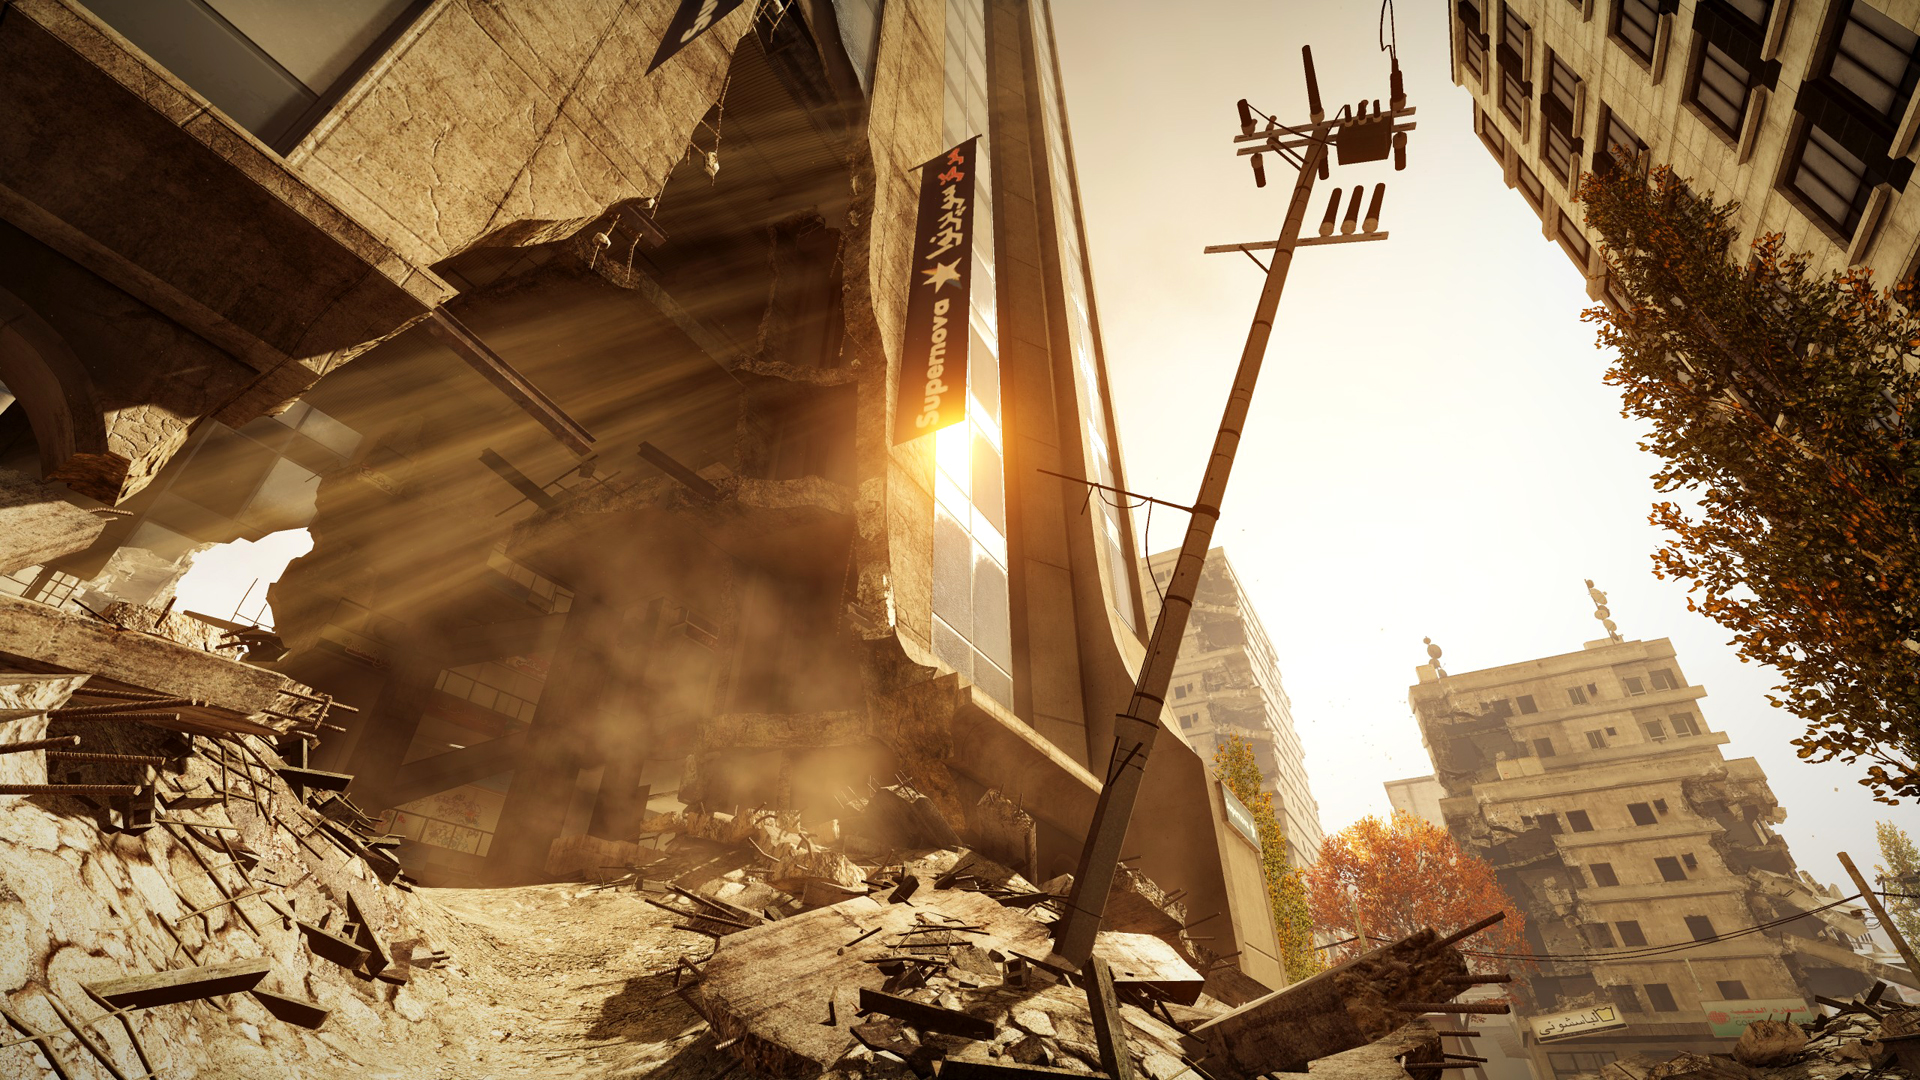 BF3 Aftermath: Markaz Market